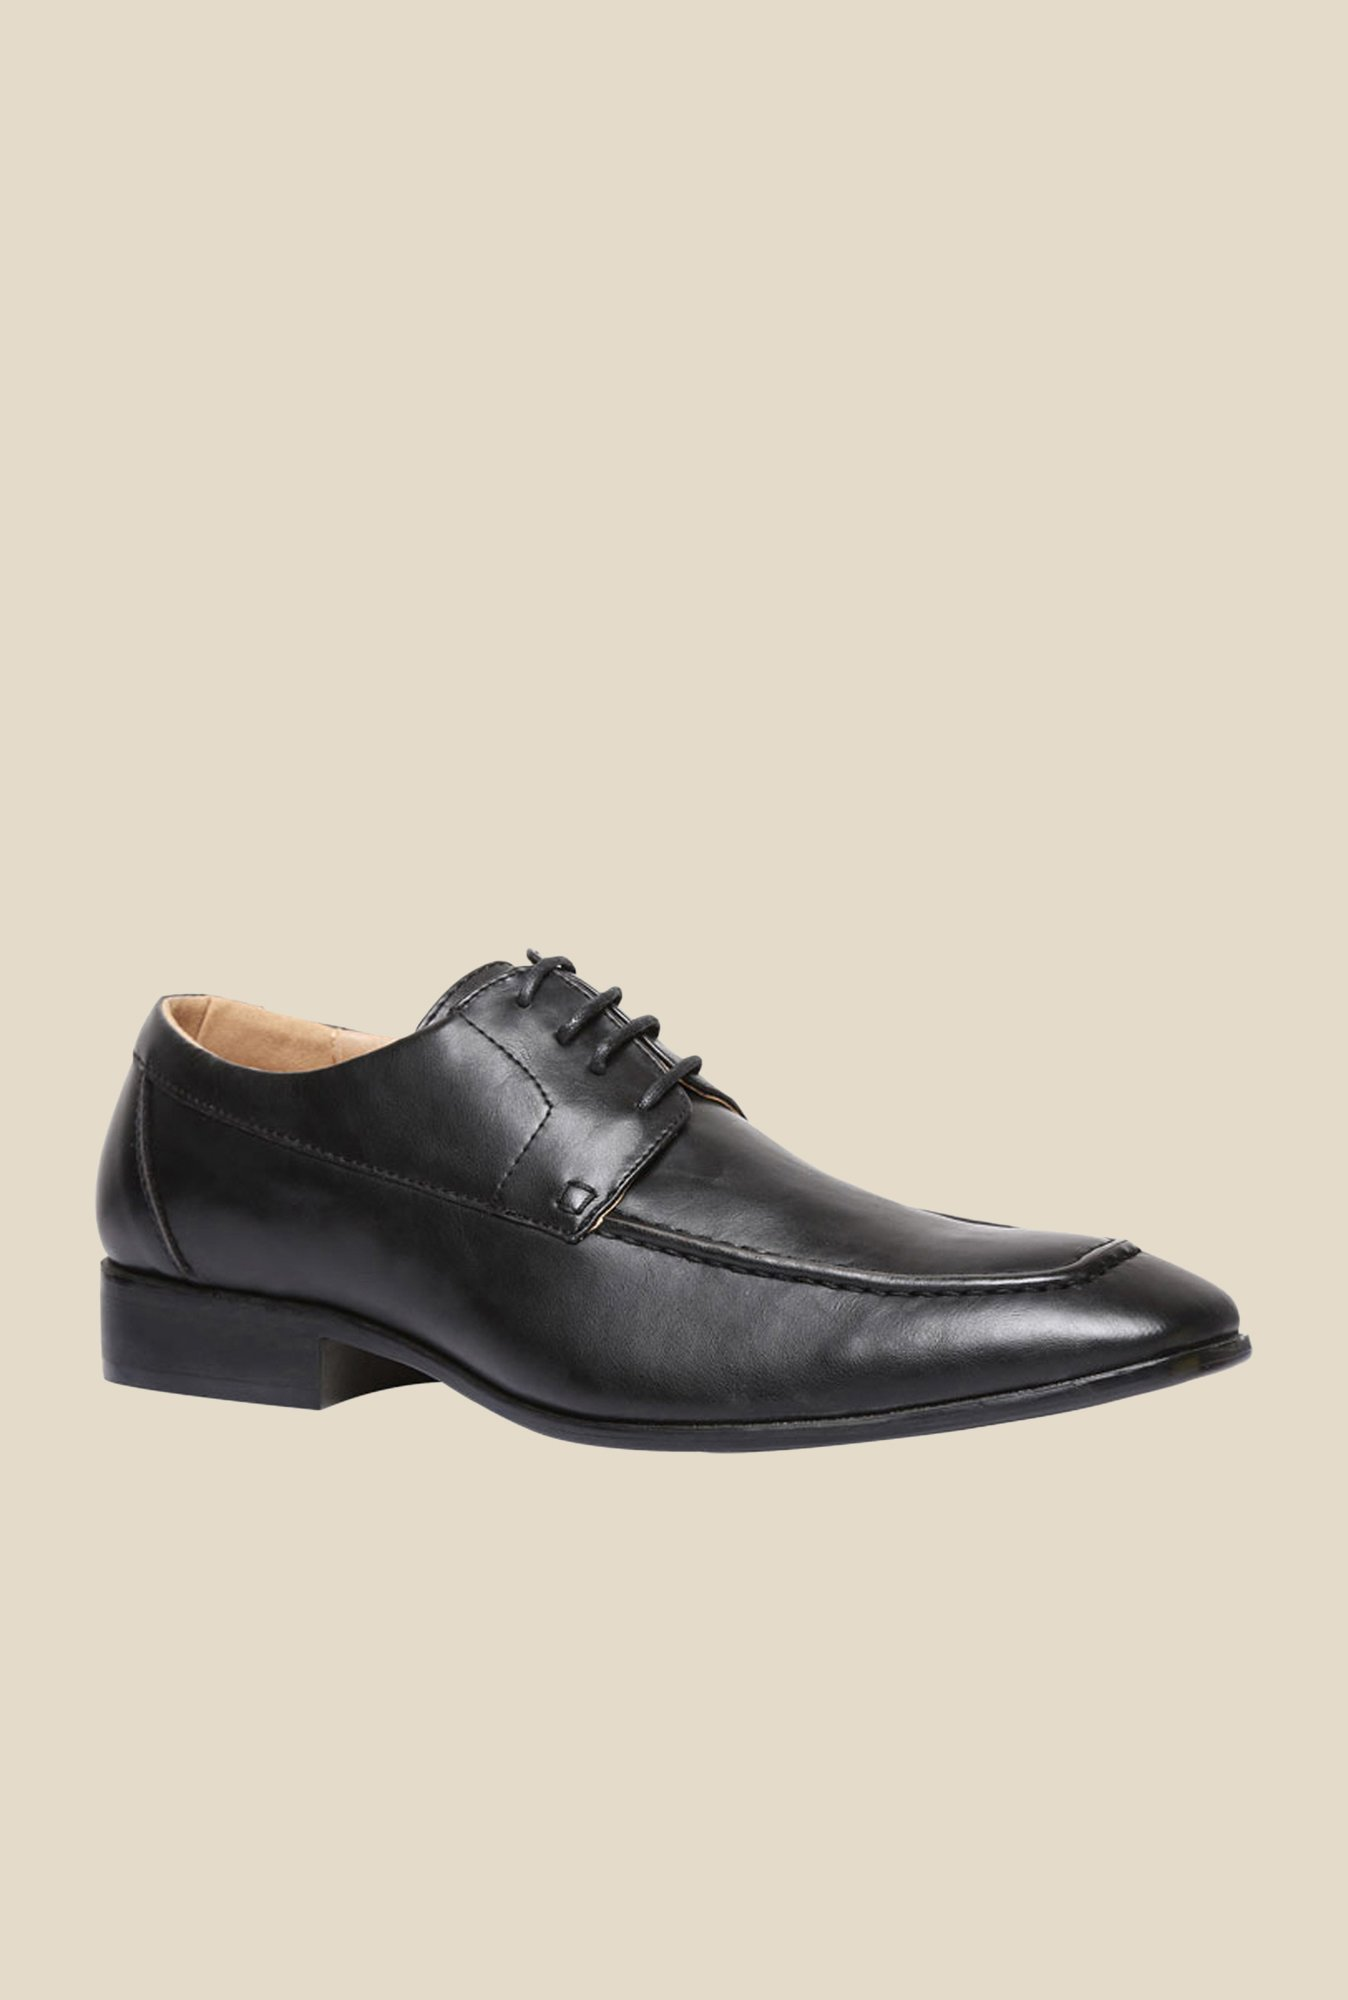 Bata Qchas Black Derby Shoes